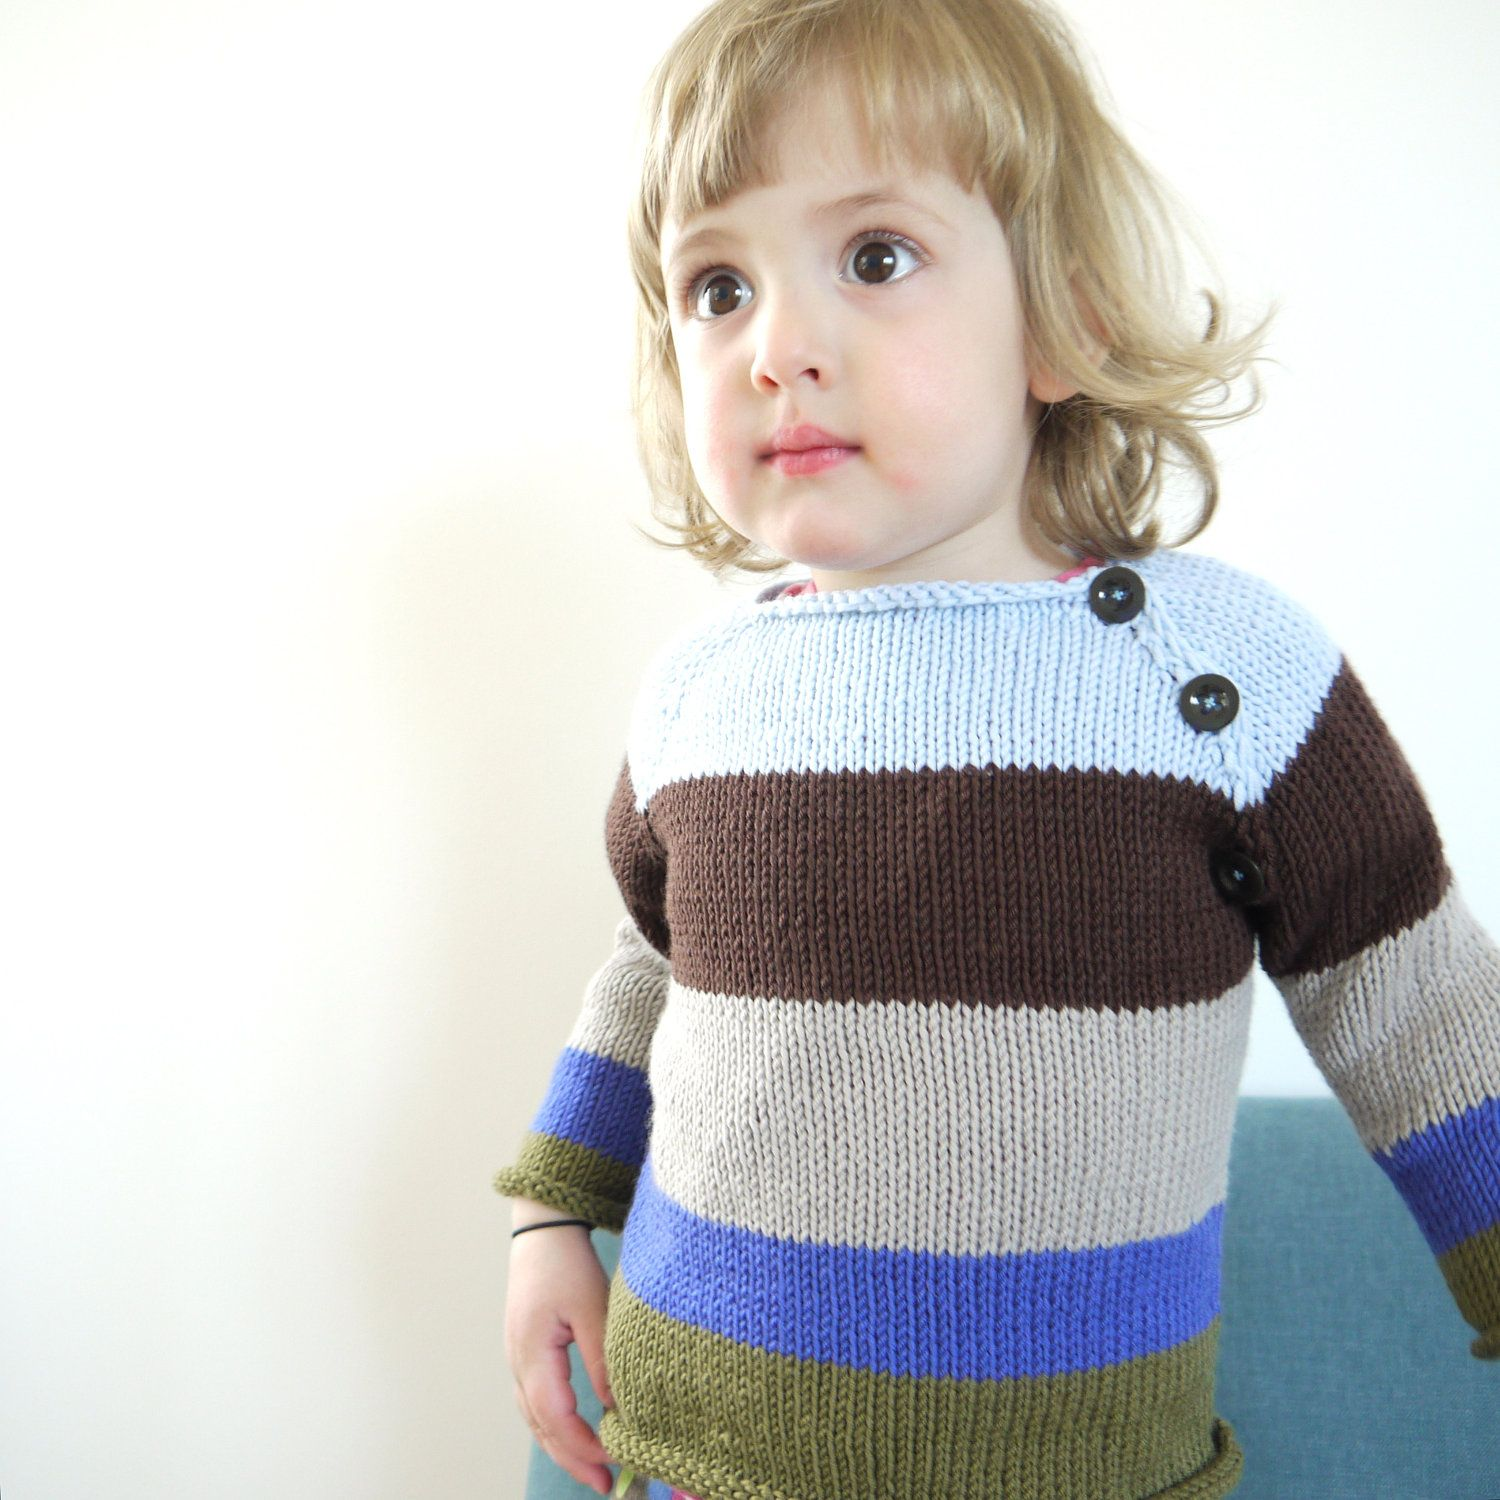 cb49e85a0242 Boys Hand Knitted Sweater - Colour Block Pullover - seamless cut ...